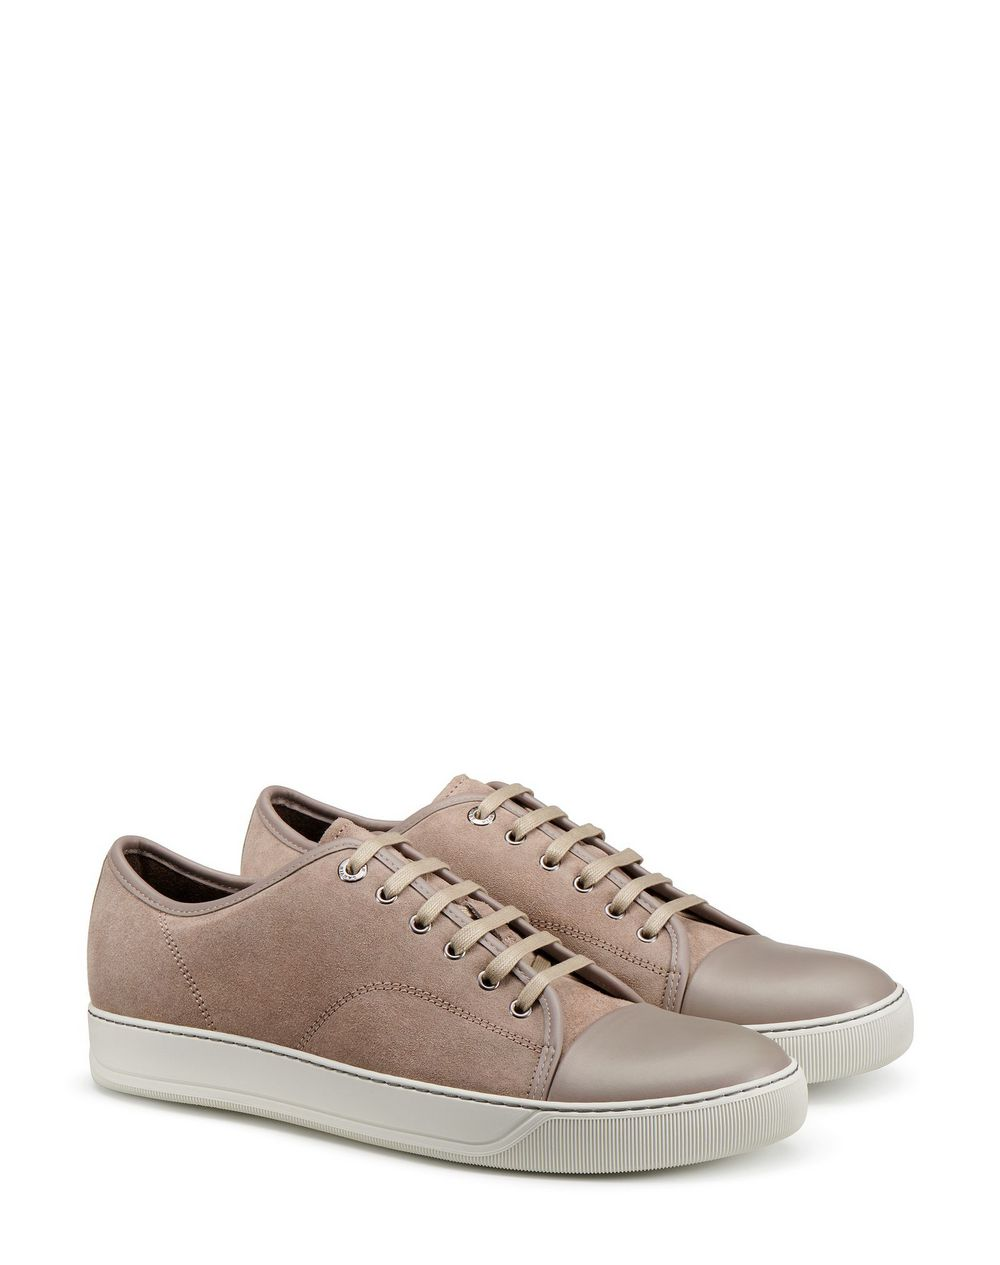 DBB1 SUEDE AND LEATHER TRAINERS - Lanvin